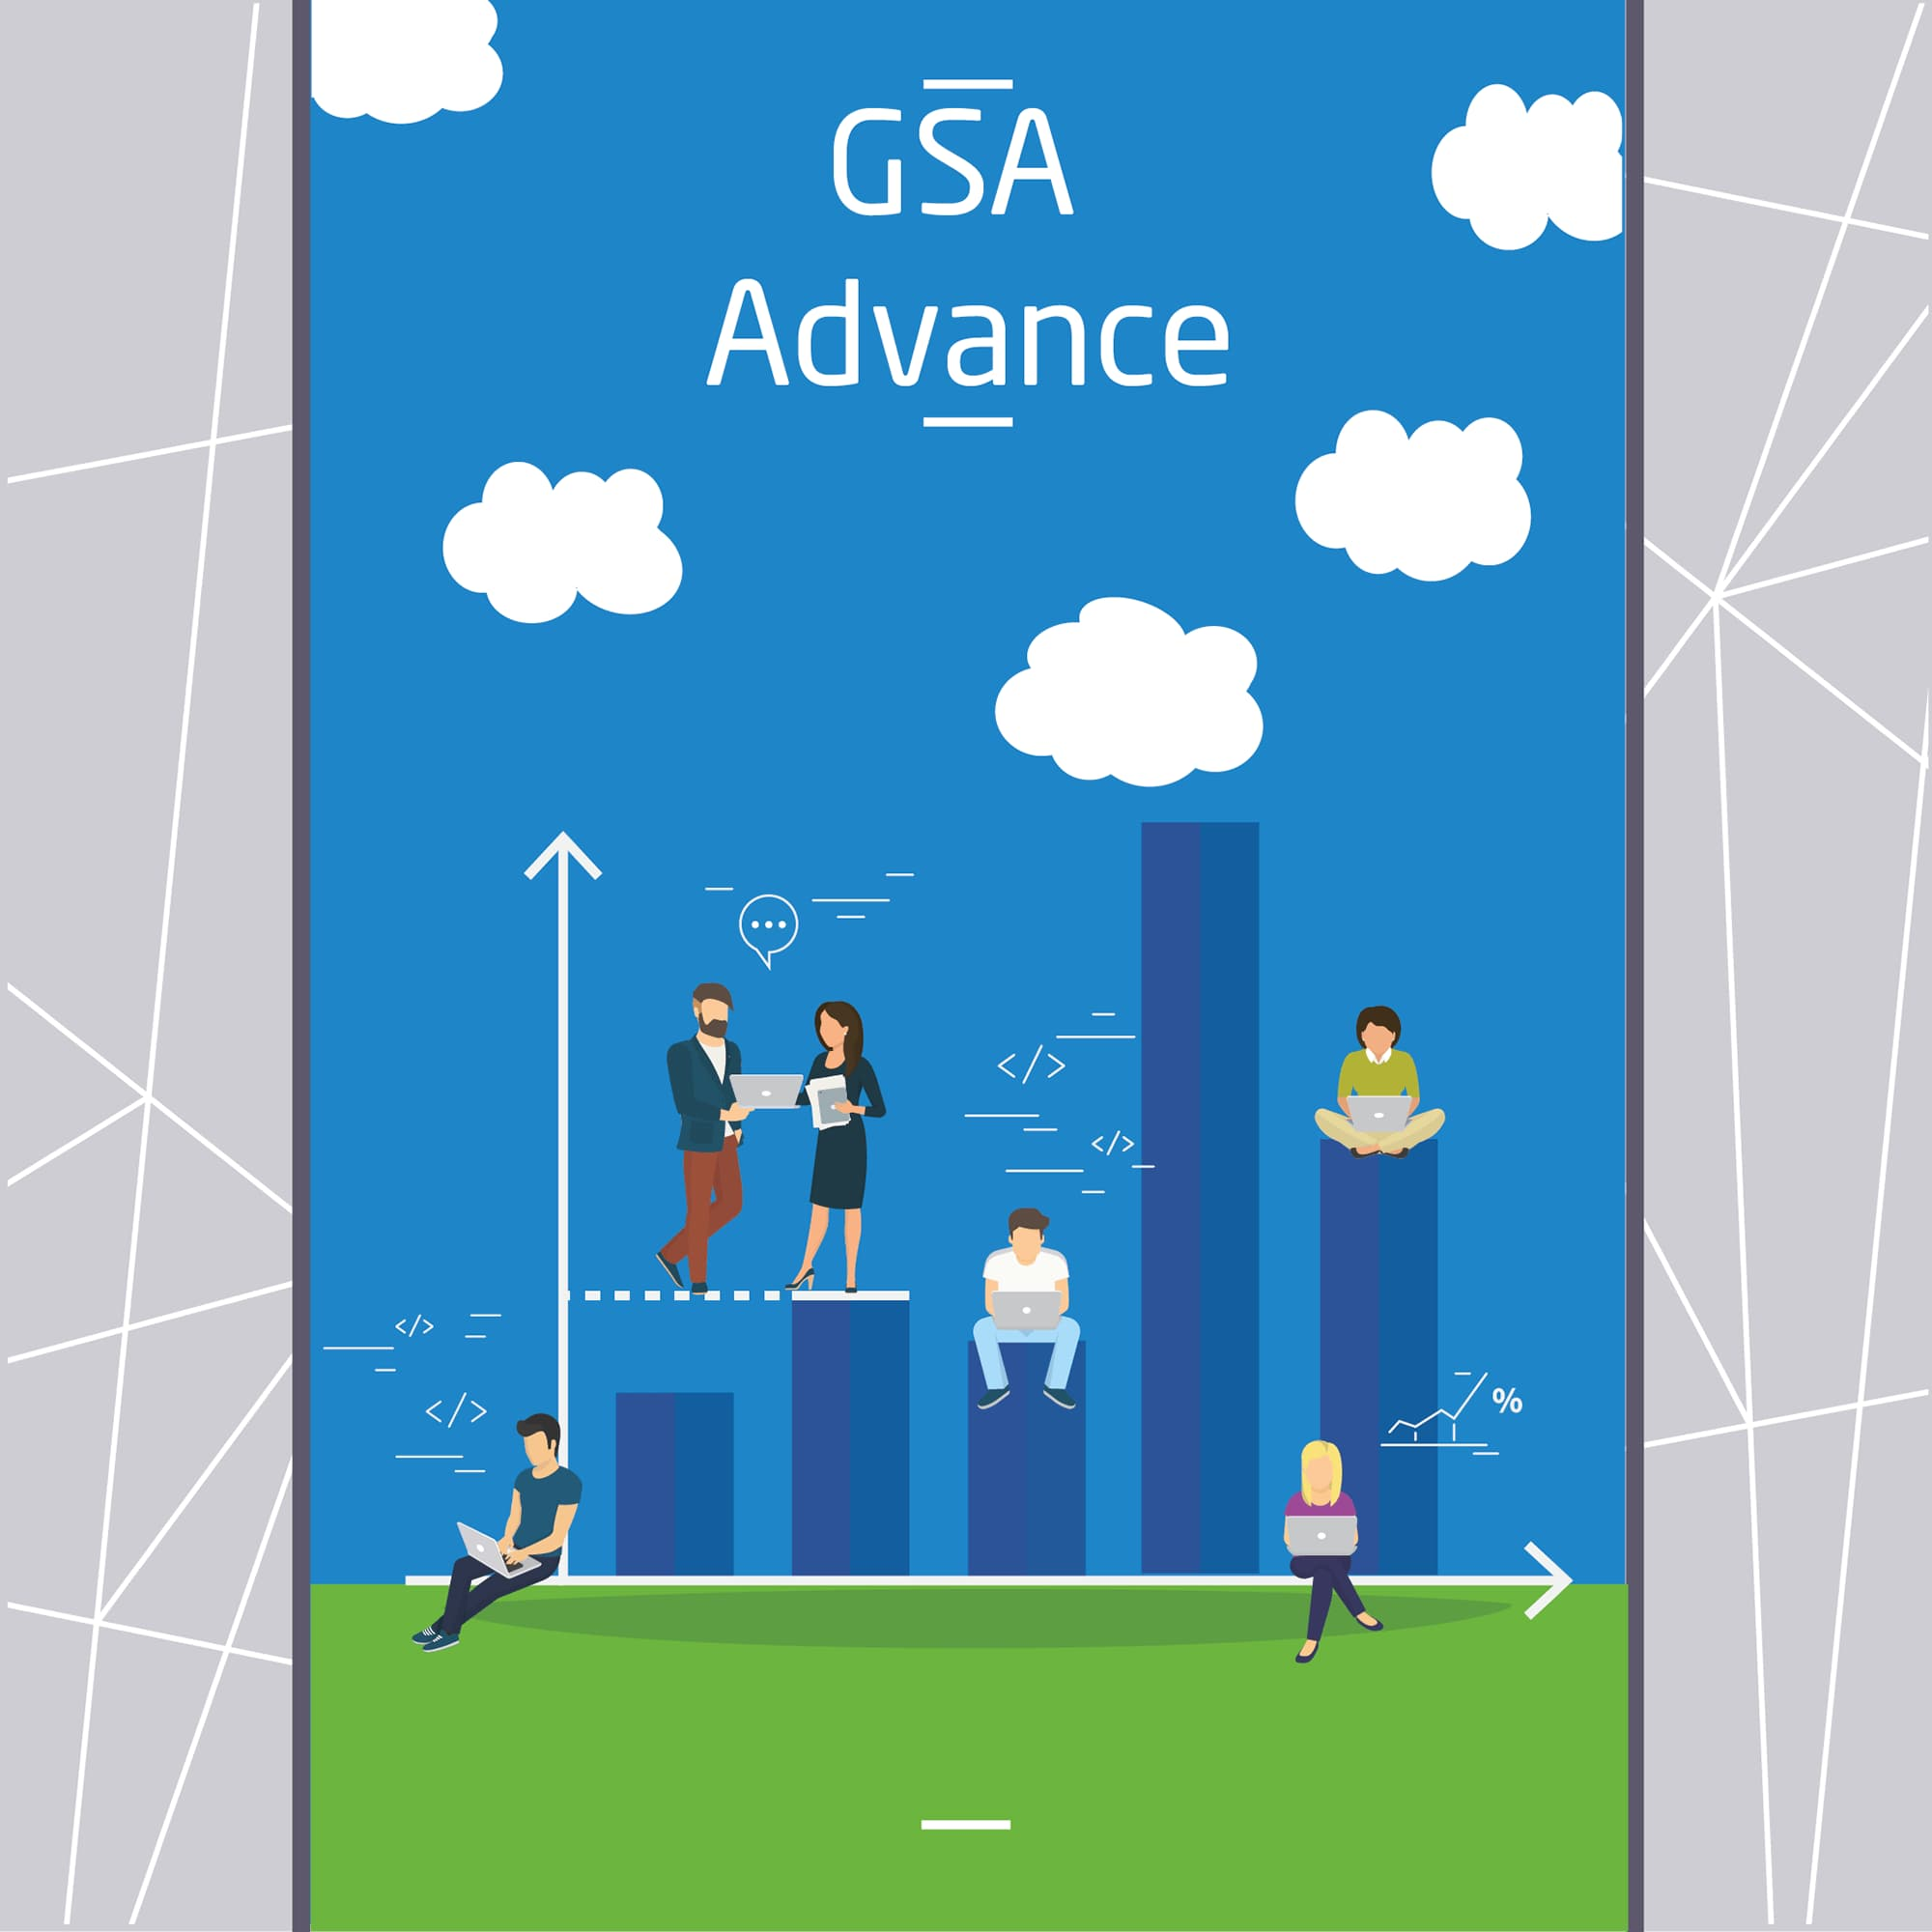 GSA Advance